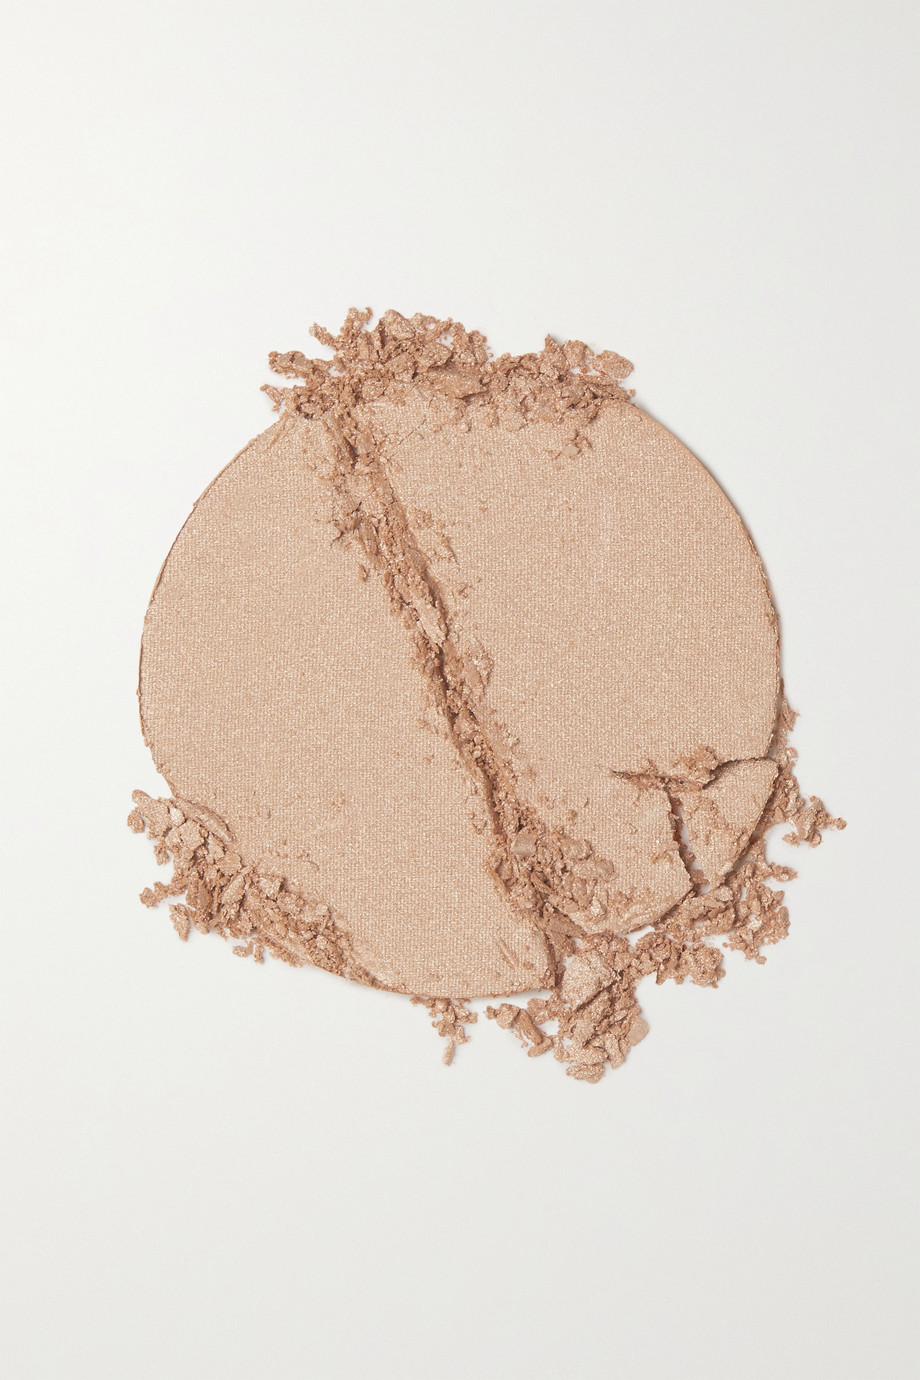 Ilia DayLite Highlighting Powder - Starstruck